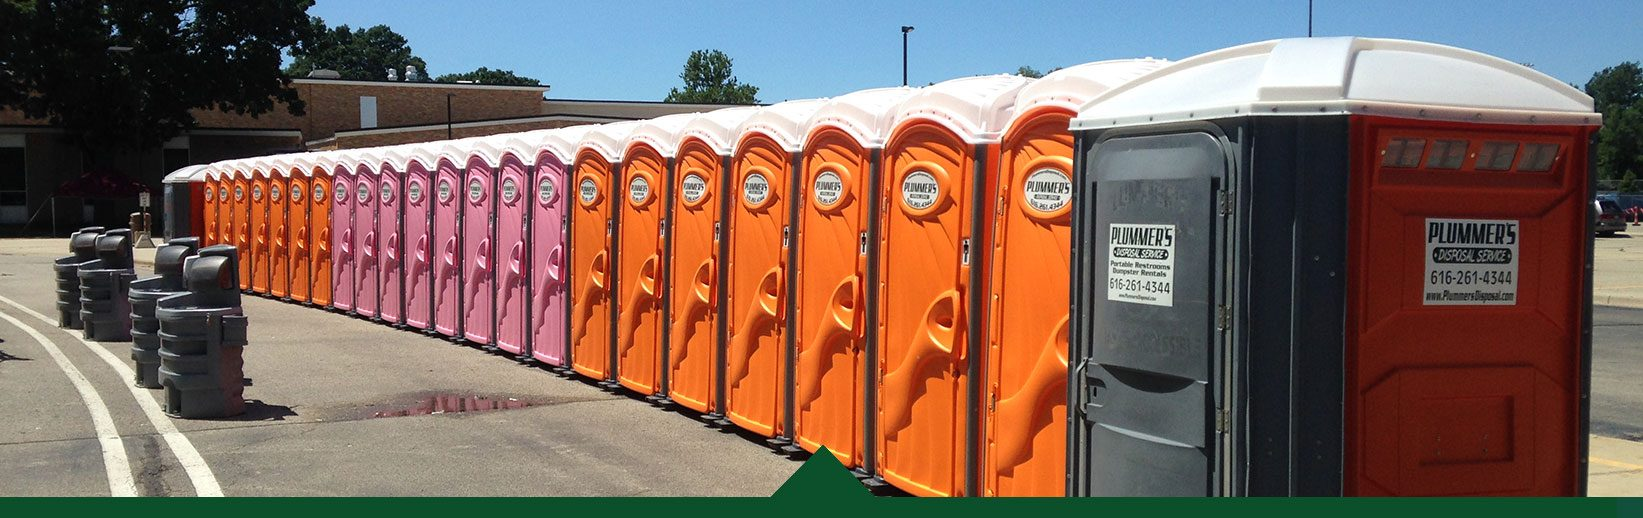 Portable Toilets at an Event provided by Plummers Disposal Services